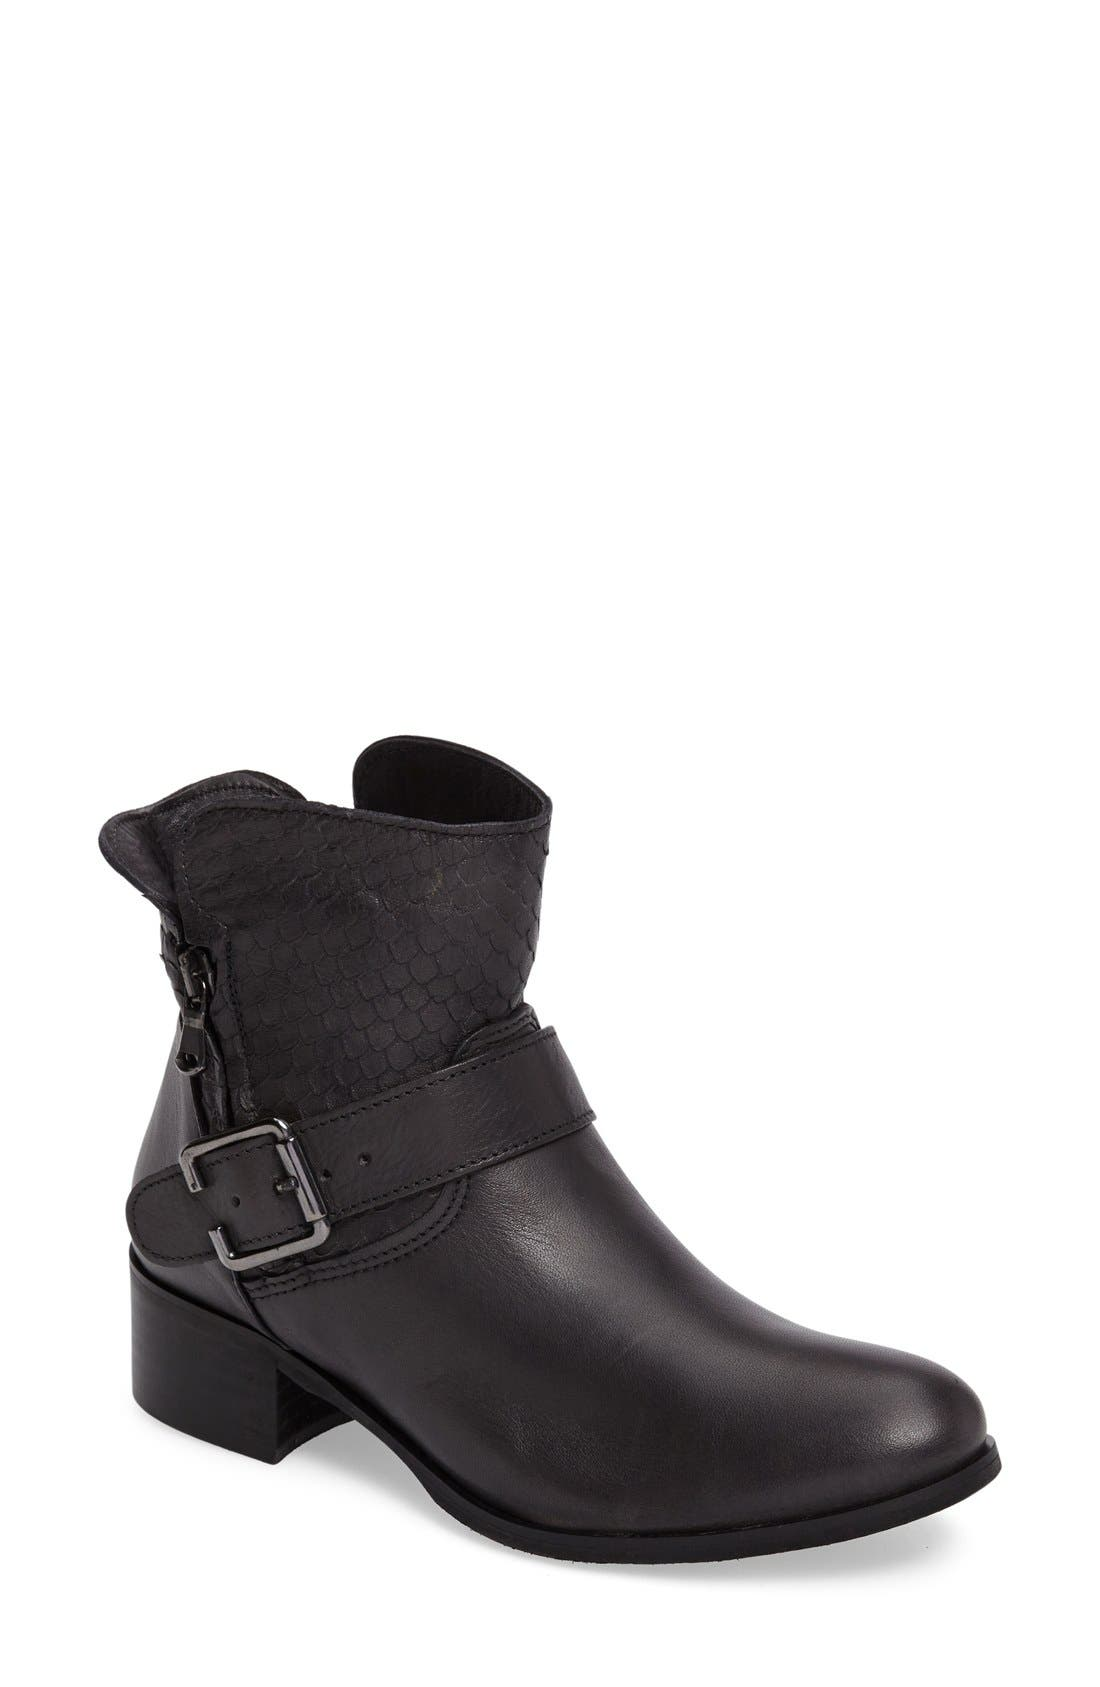 Alternate Image 1 Selected - CrossTown Chiara 22 Textured Buckle Strap Bootie (Women)